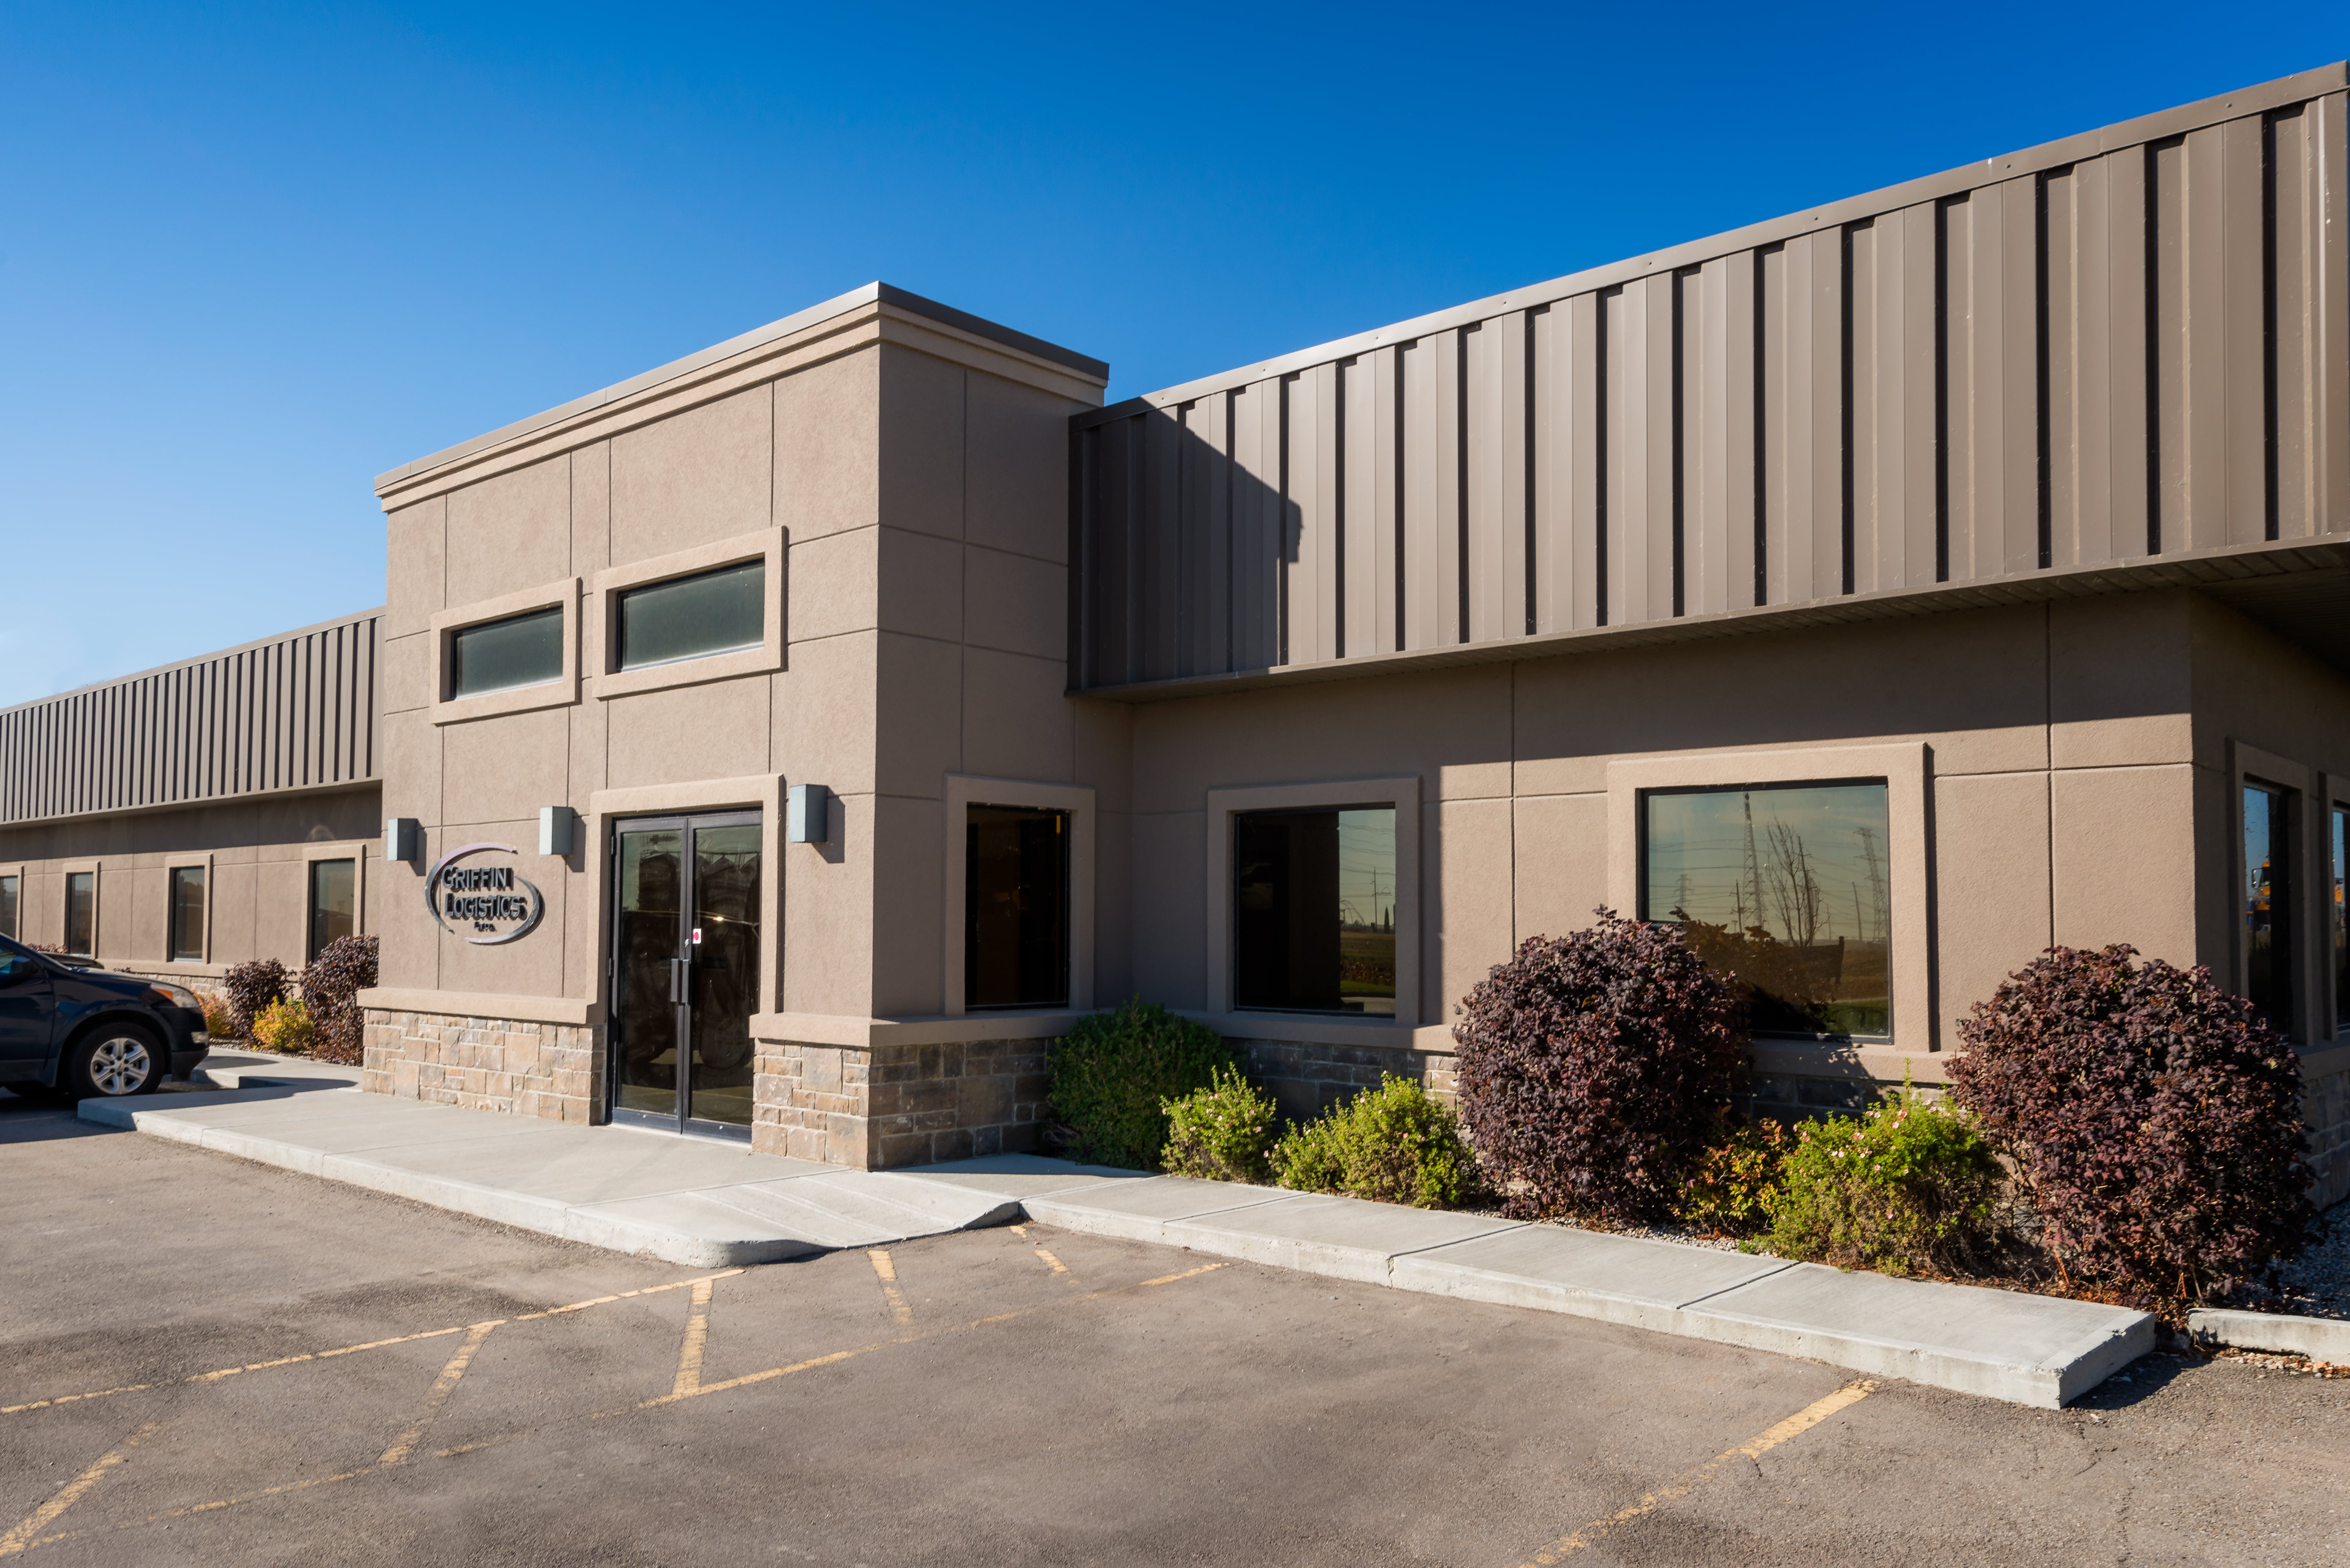 Office Builds - What You Need to Know - ProDesign Inc - Builders in Calgary